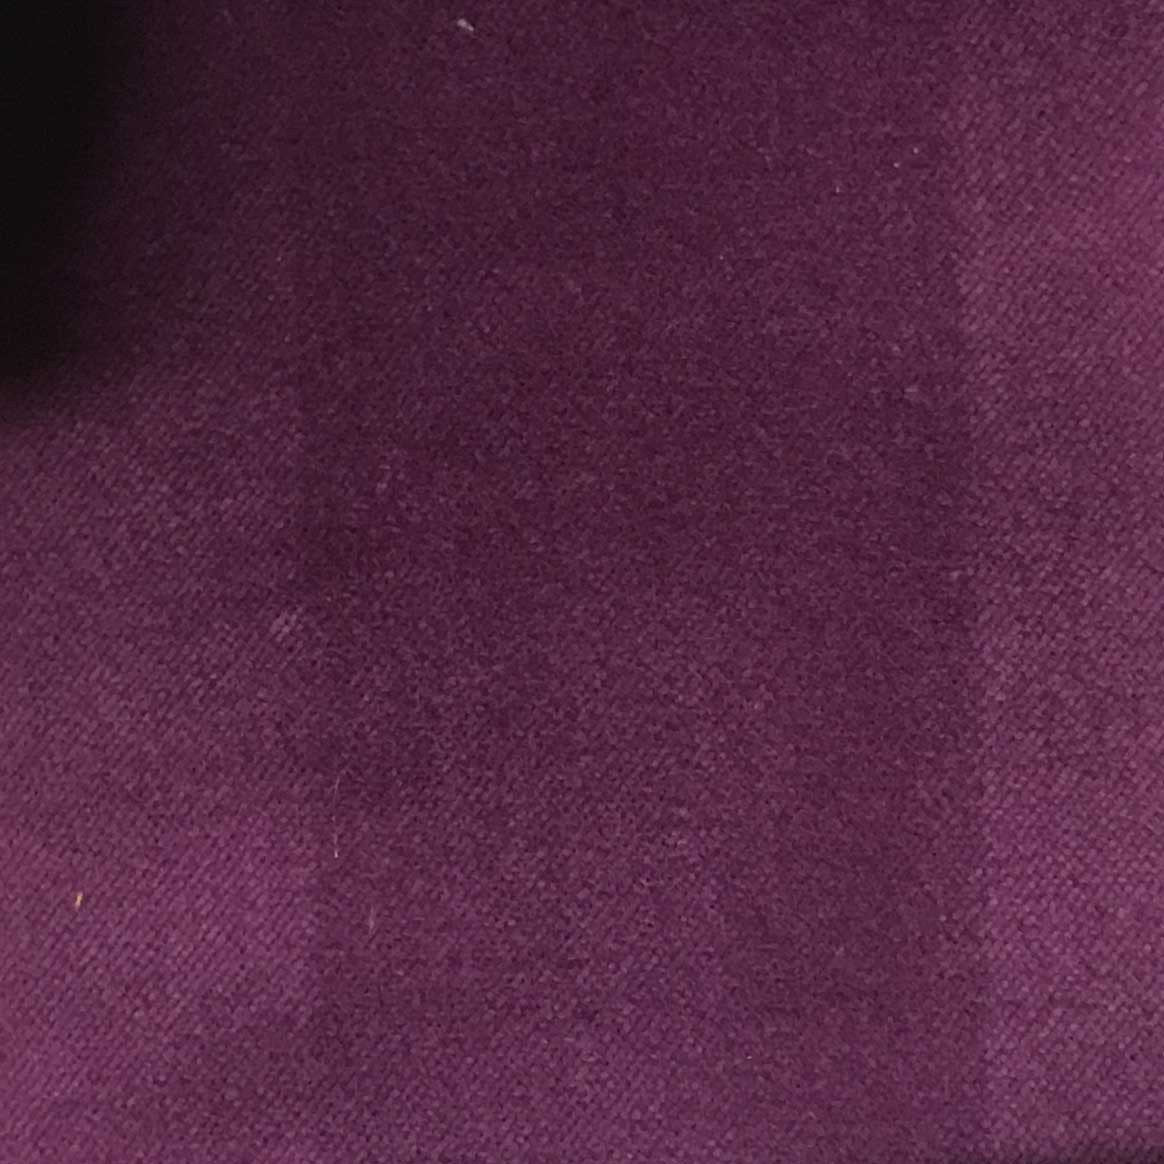 bowie 100 cotton velvet upholstery fabric by the yard 77 colors ebay. Black Bedroom Furniture Sets. Home Design Ideas